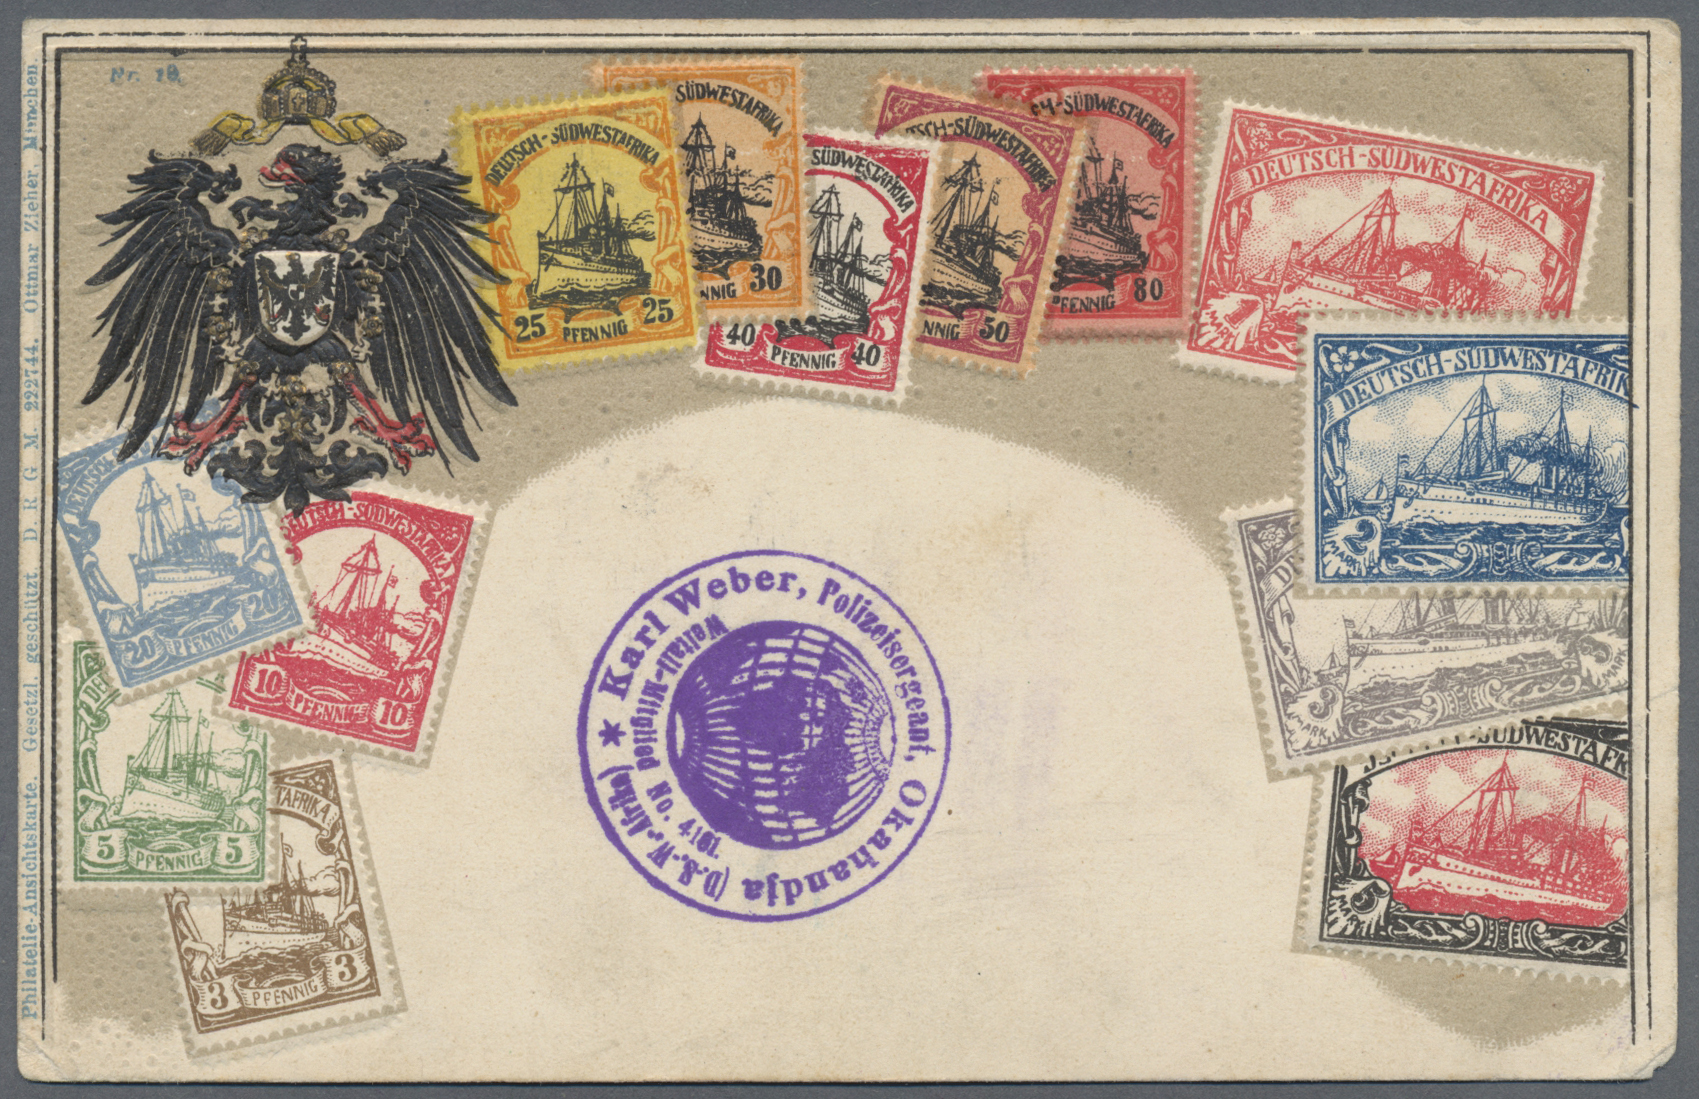 Lot 22682 - Deutsch-Südwestafrika - Stempel  -  Auktionshaus Christoph Gärtner GmbH & Co. KG Sale #44 Germany, Picture Post cards